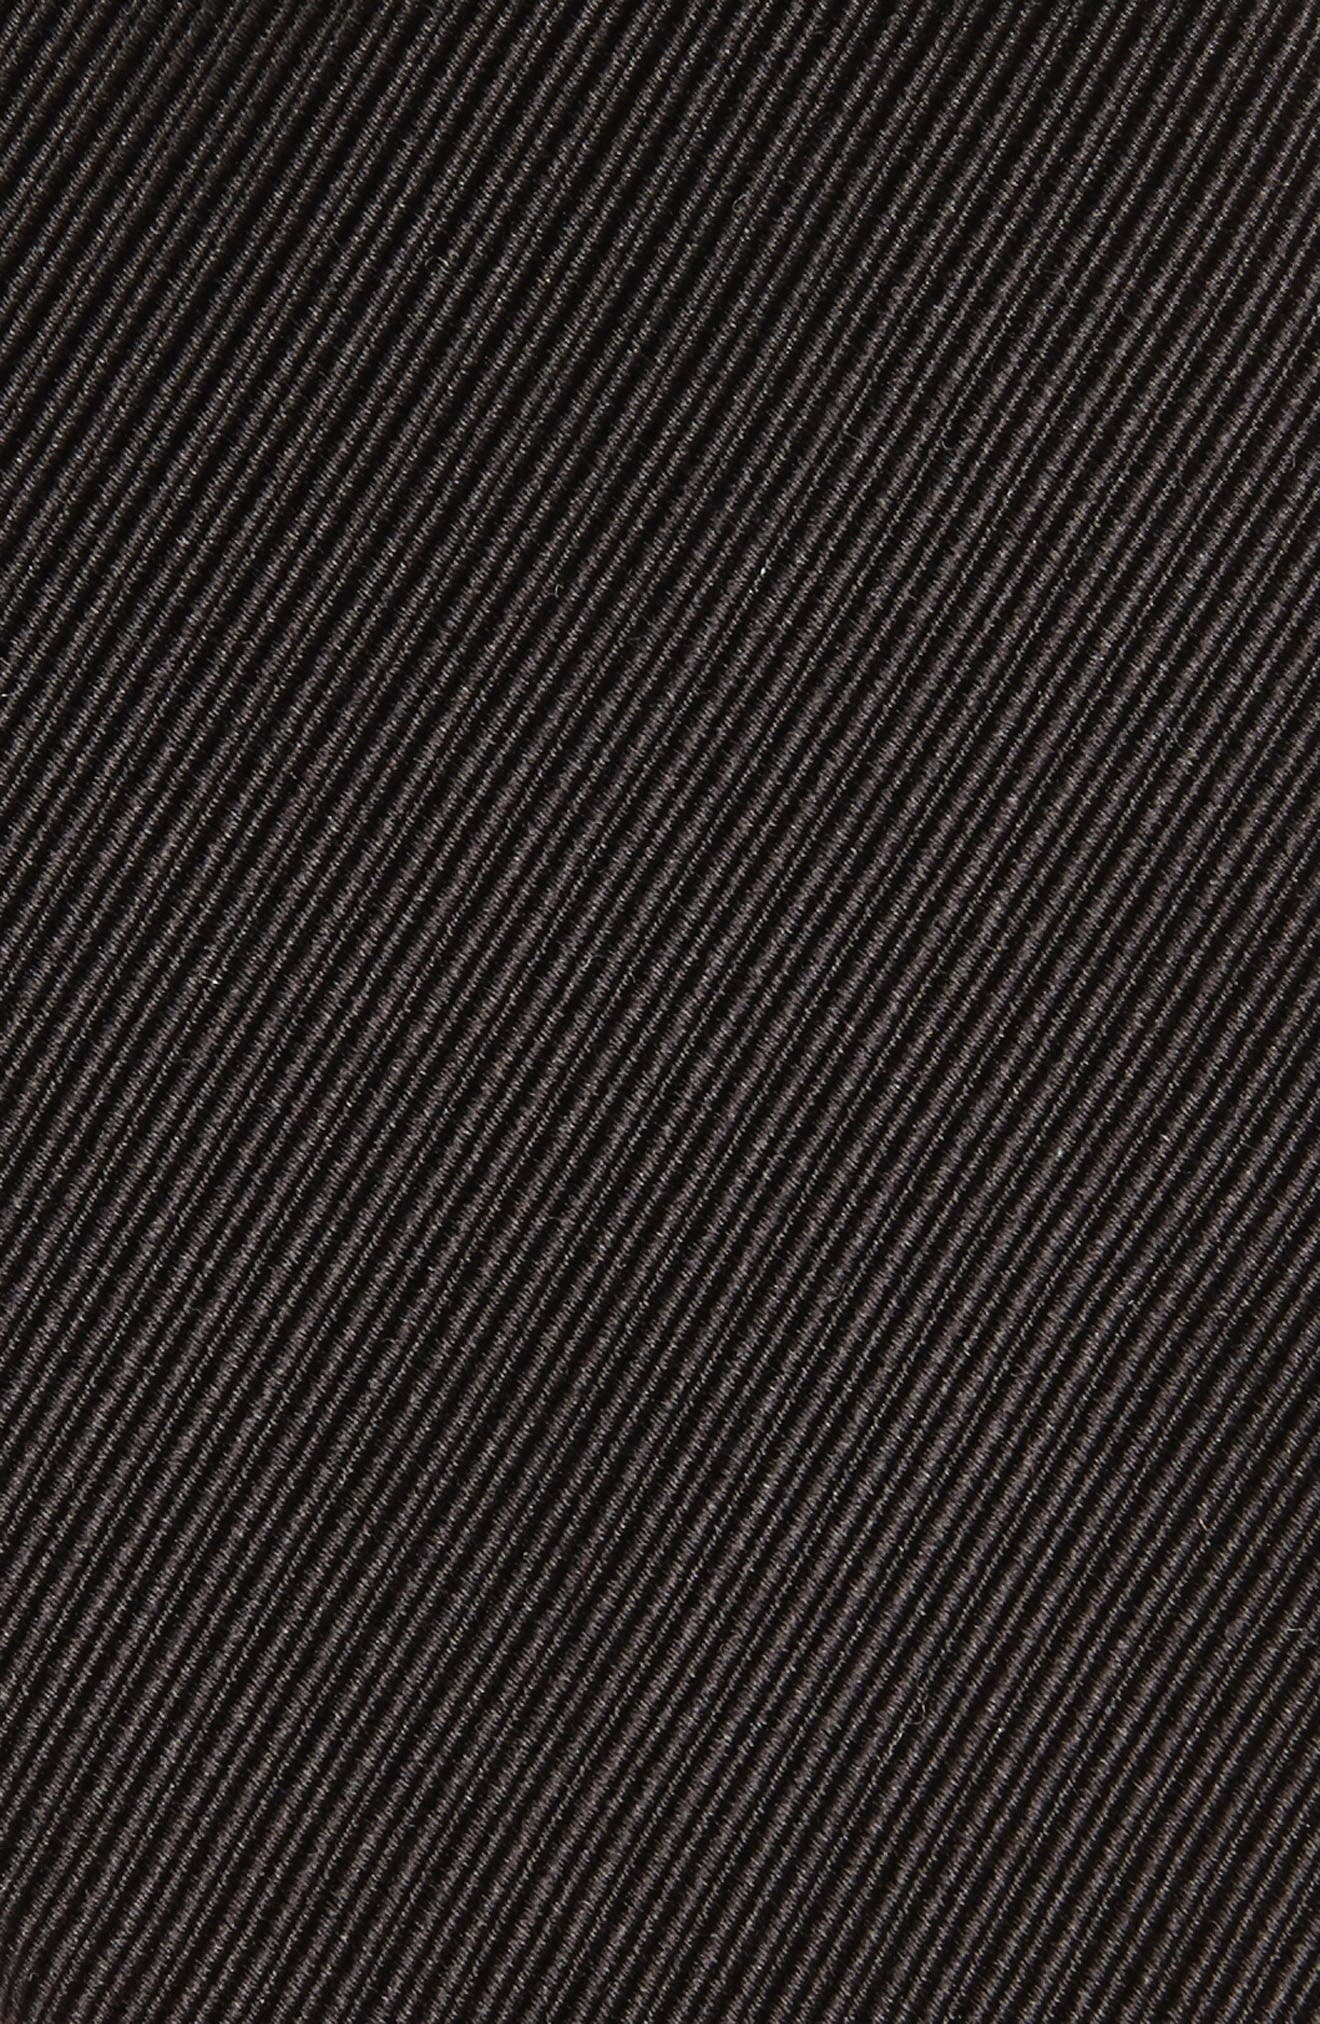 Stripe Silk Tie,                             Alternate thumbnail 2, color,                             BLACK